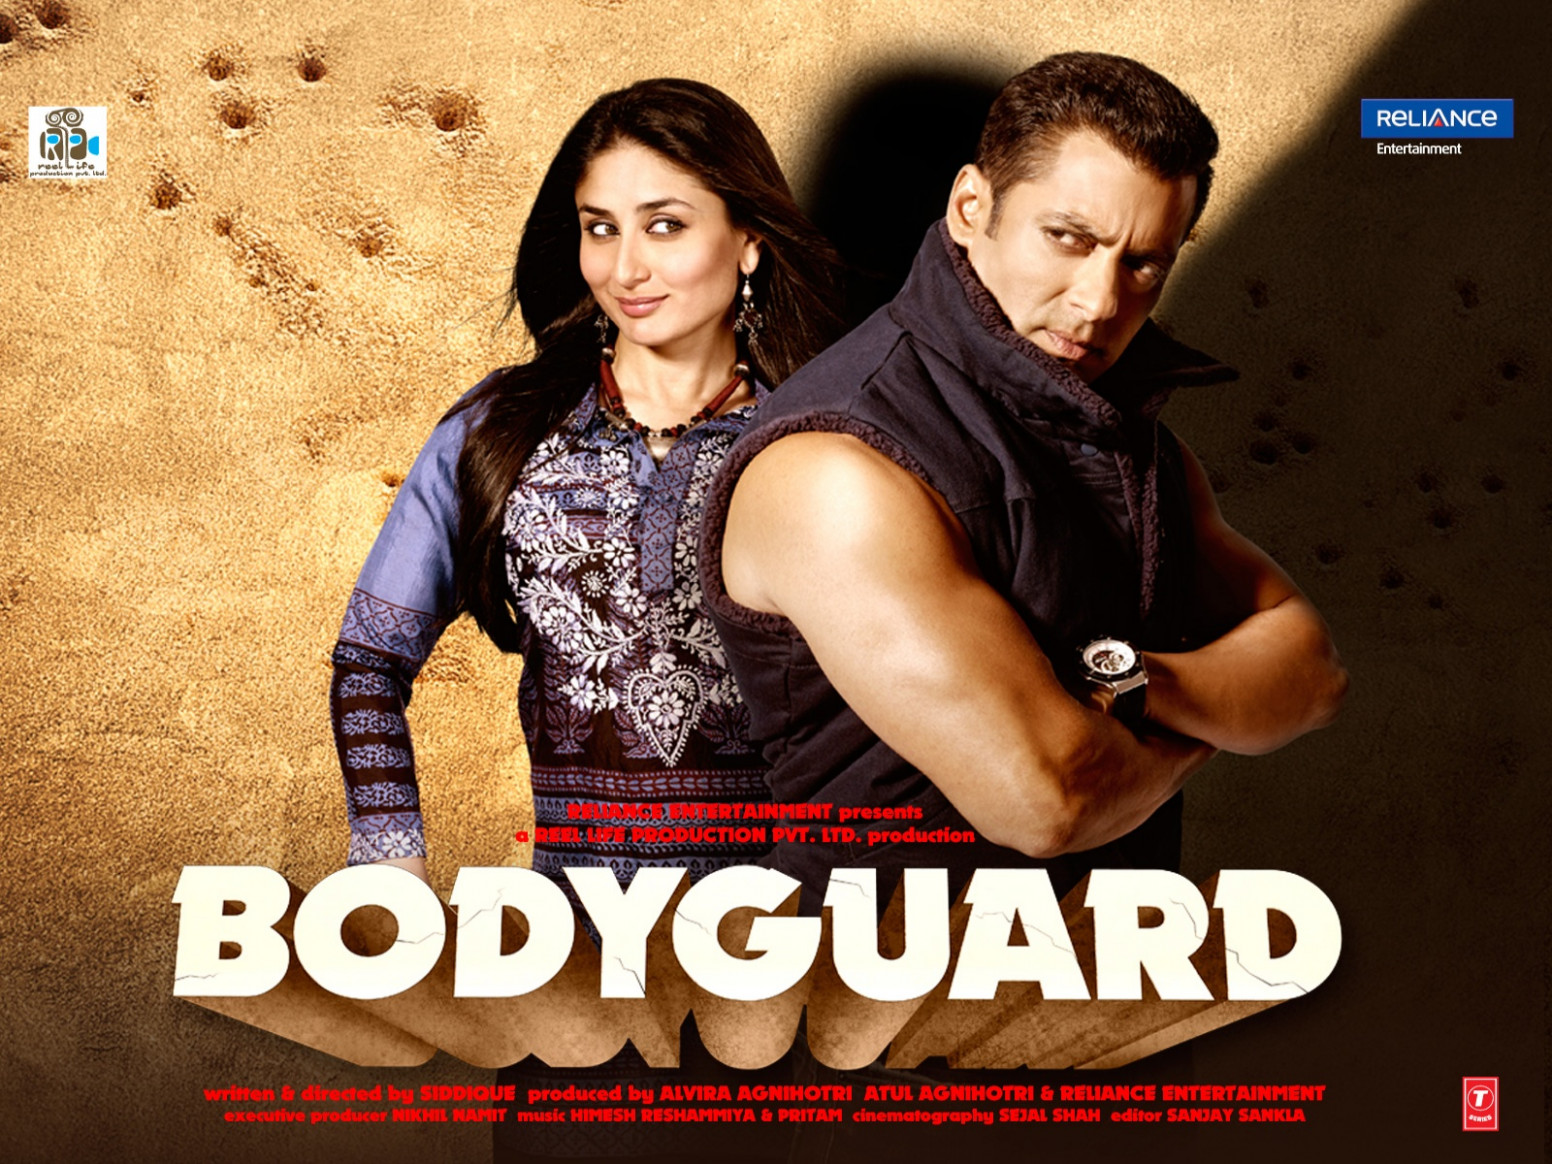 Movies Here: Hindi Movie bodyguard Full Movie